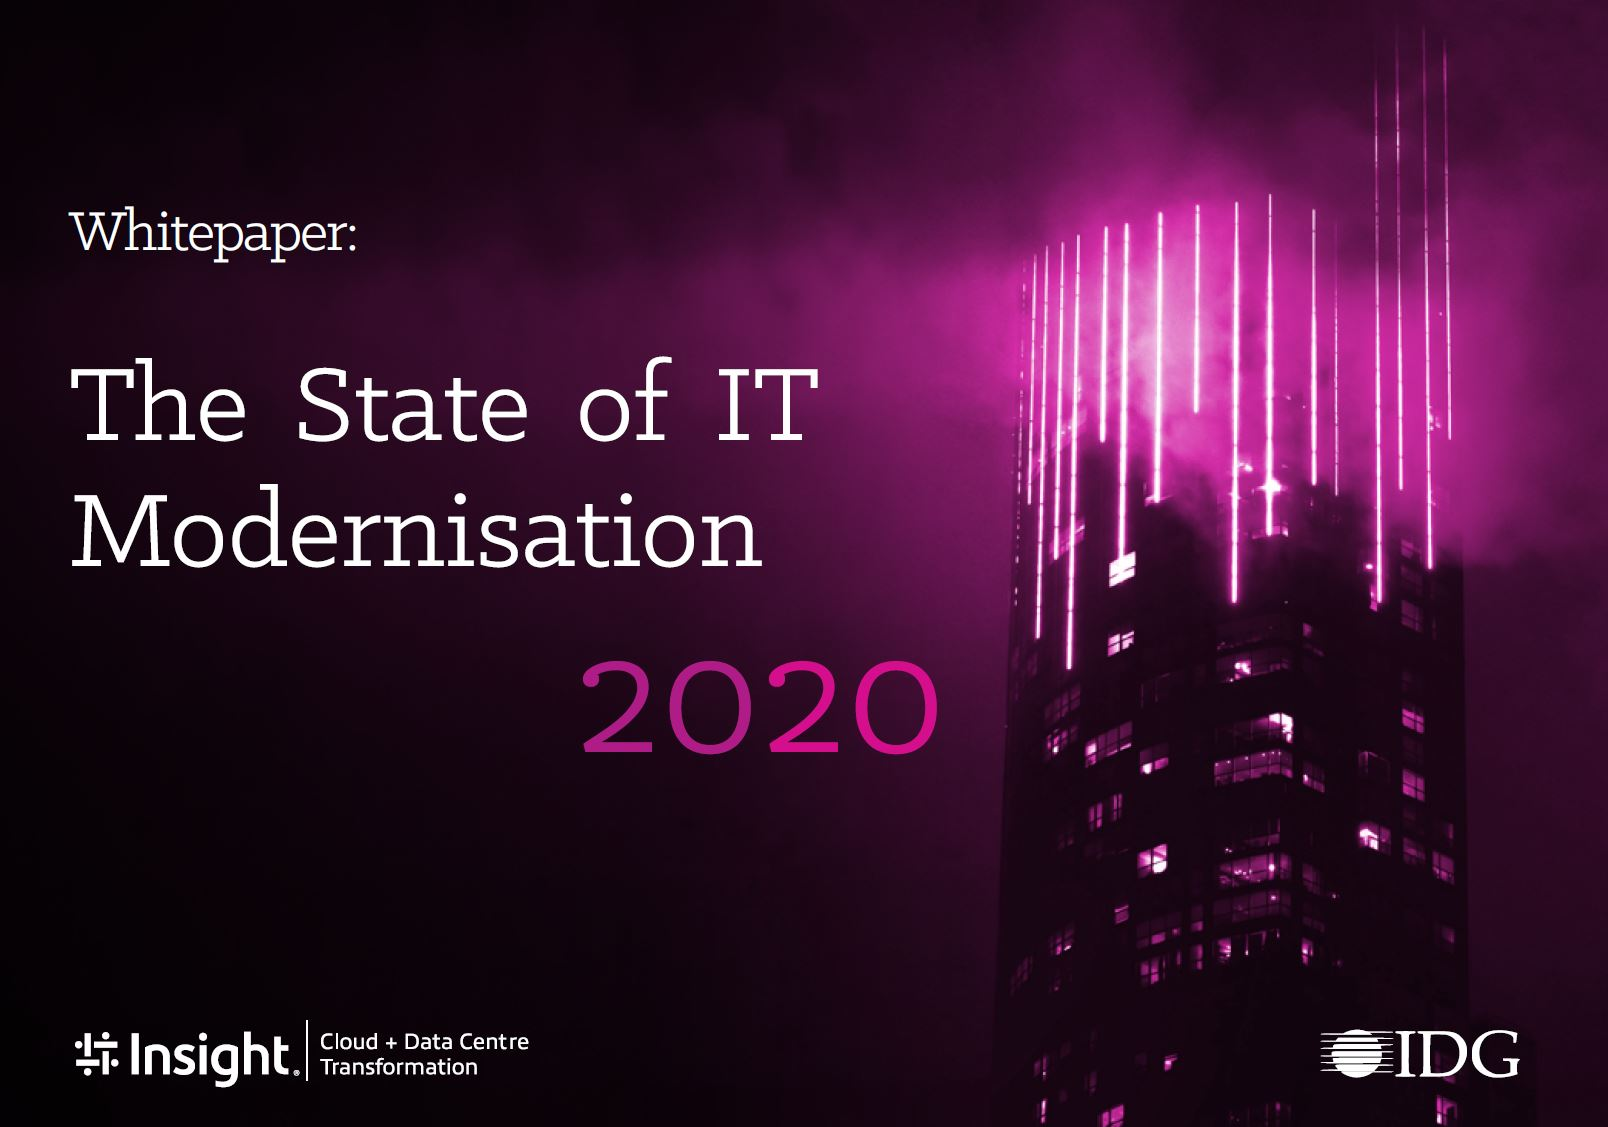 The State of IT Modernization 2020